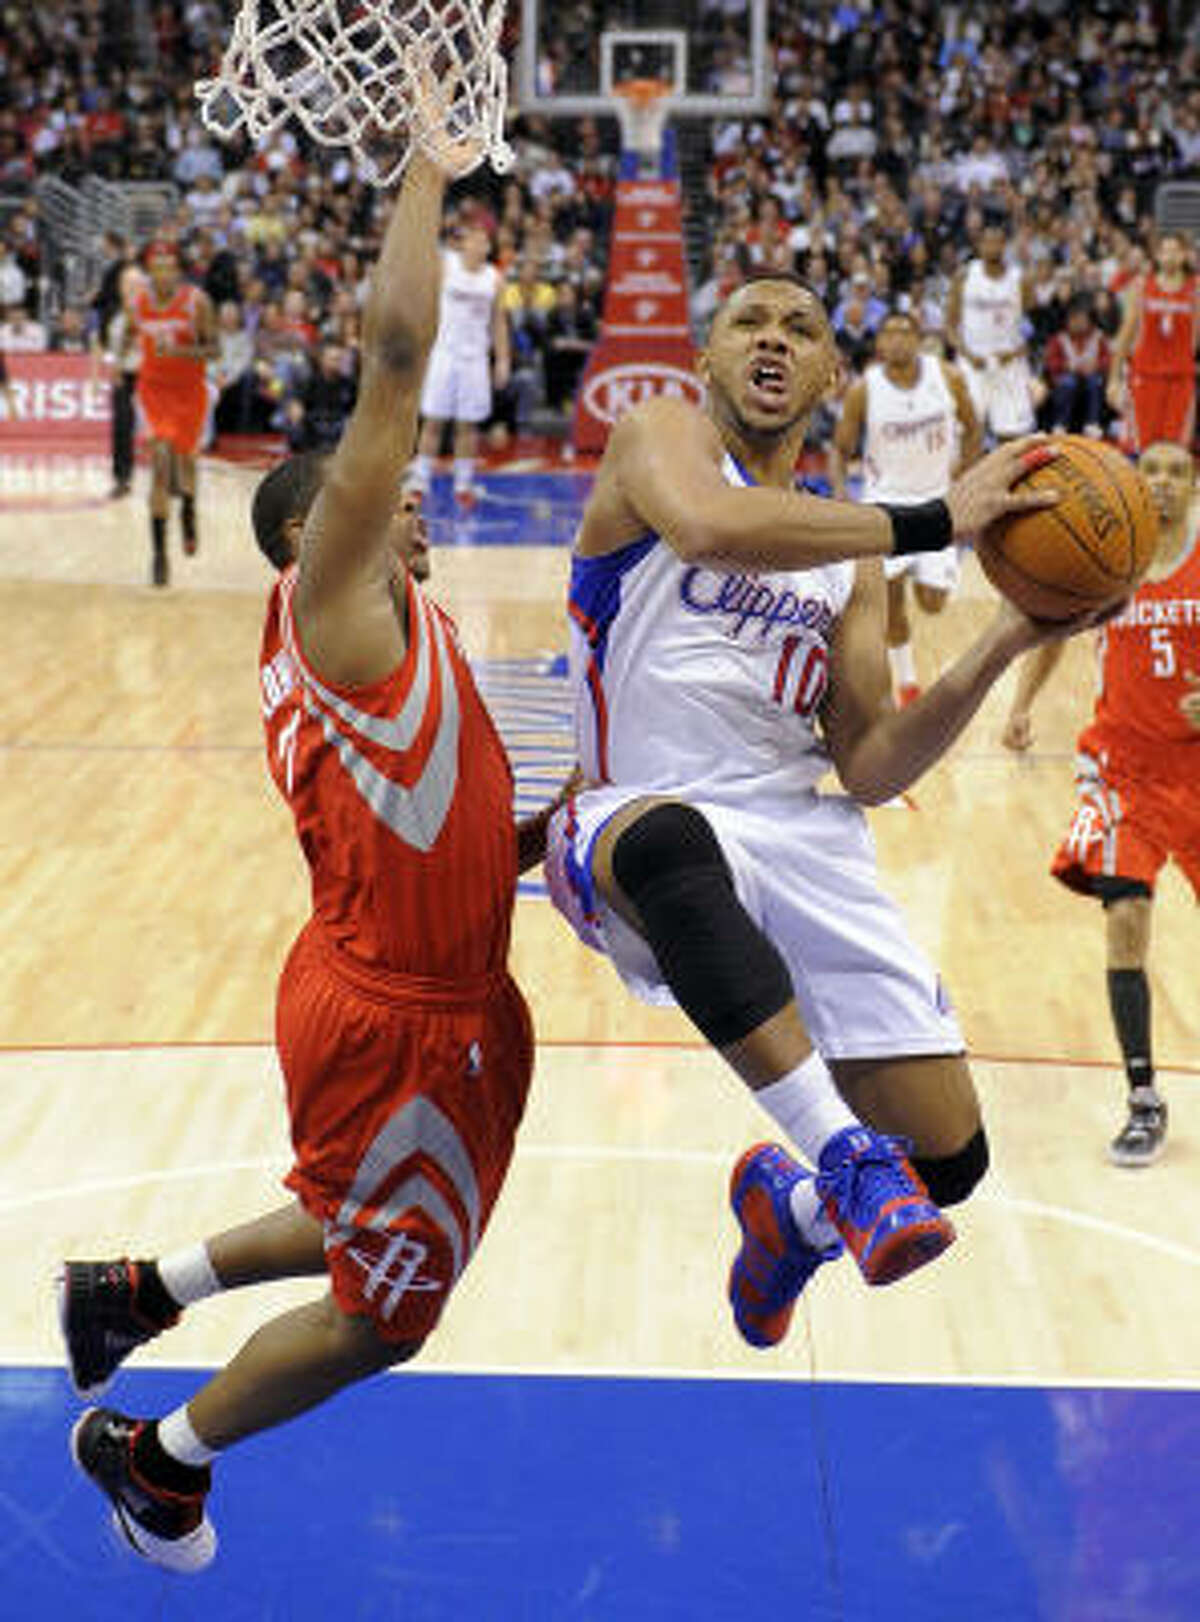 Clippers guard Eric Gordon, right, goes up for a shot over Rockets guard Kyle Lowry.